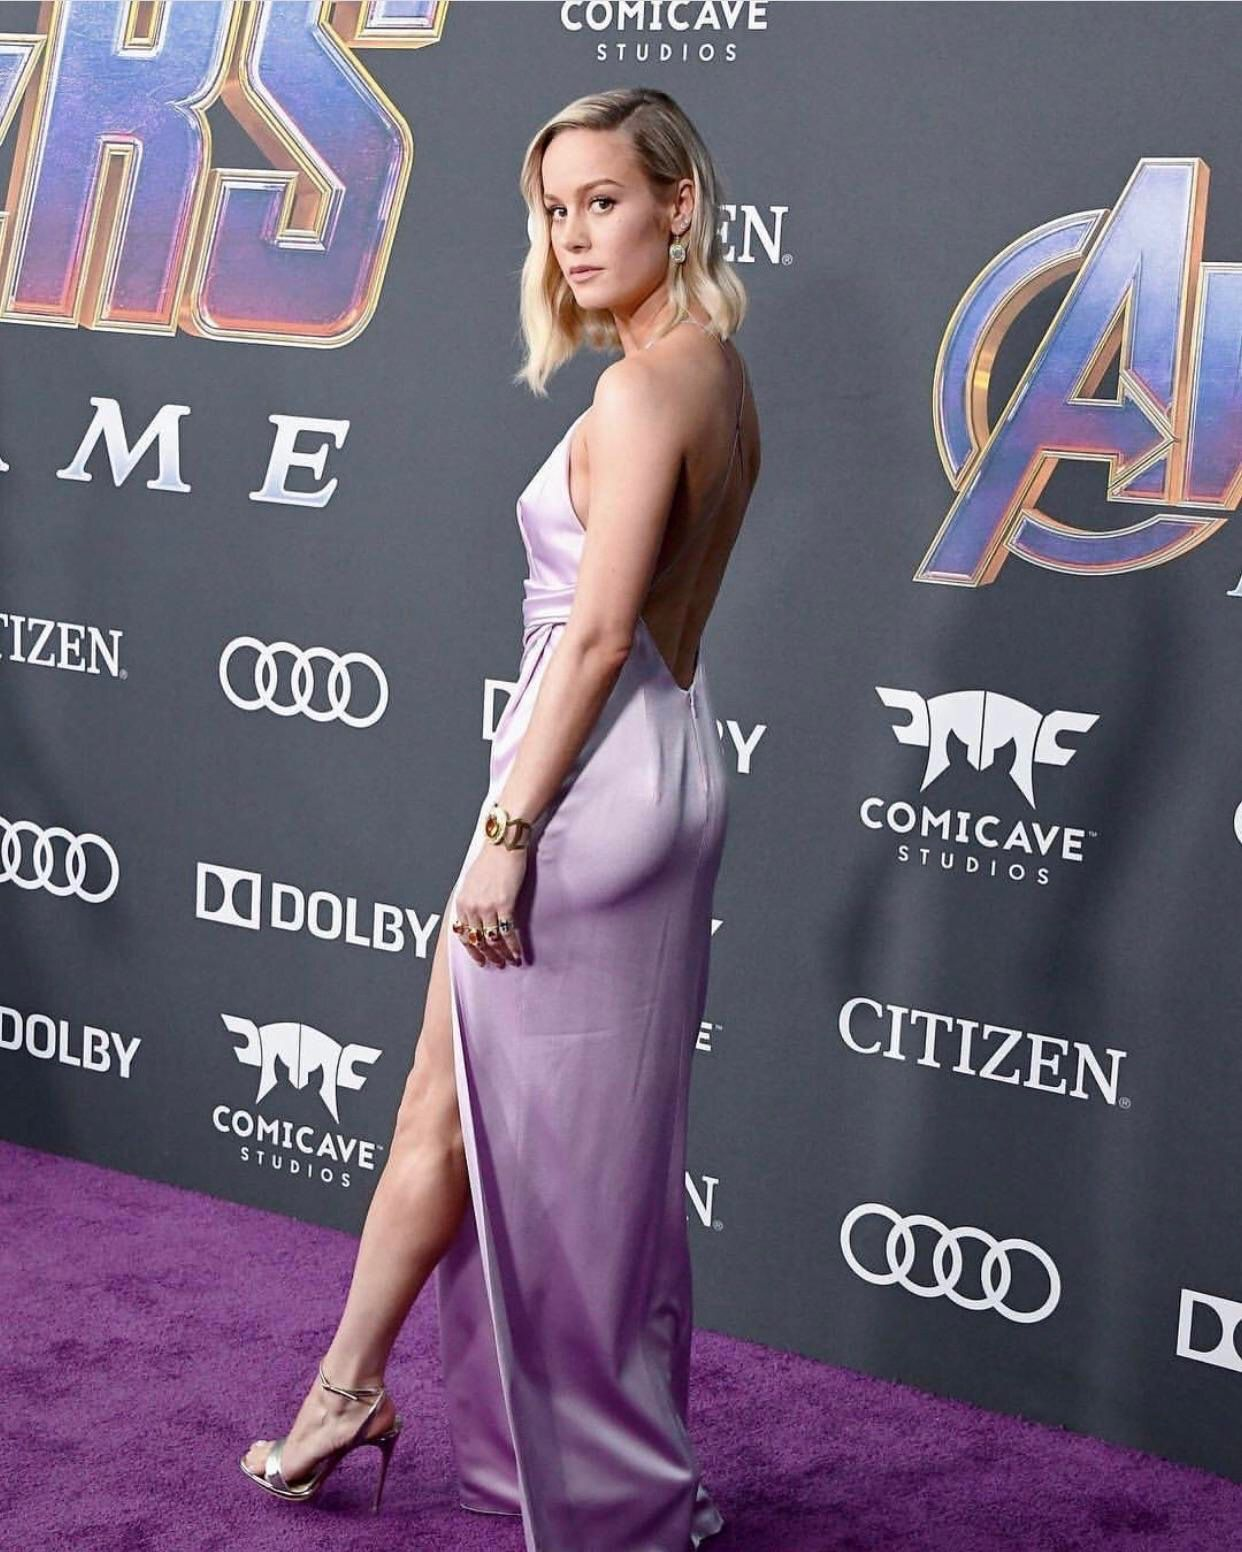 Actresses With Nice Asses photo 10